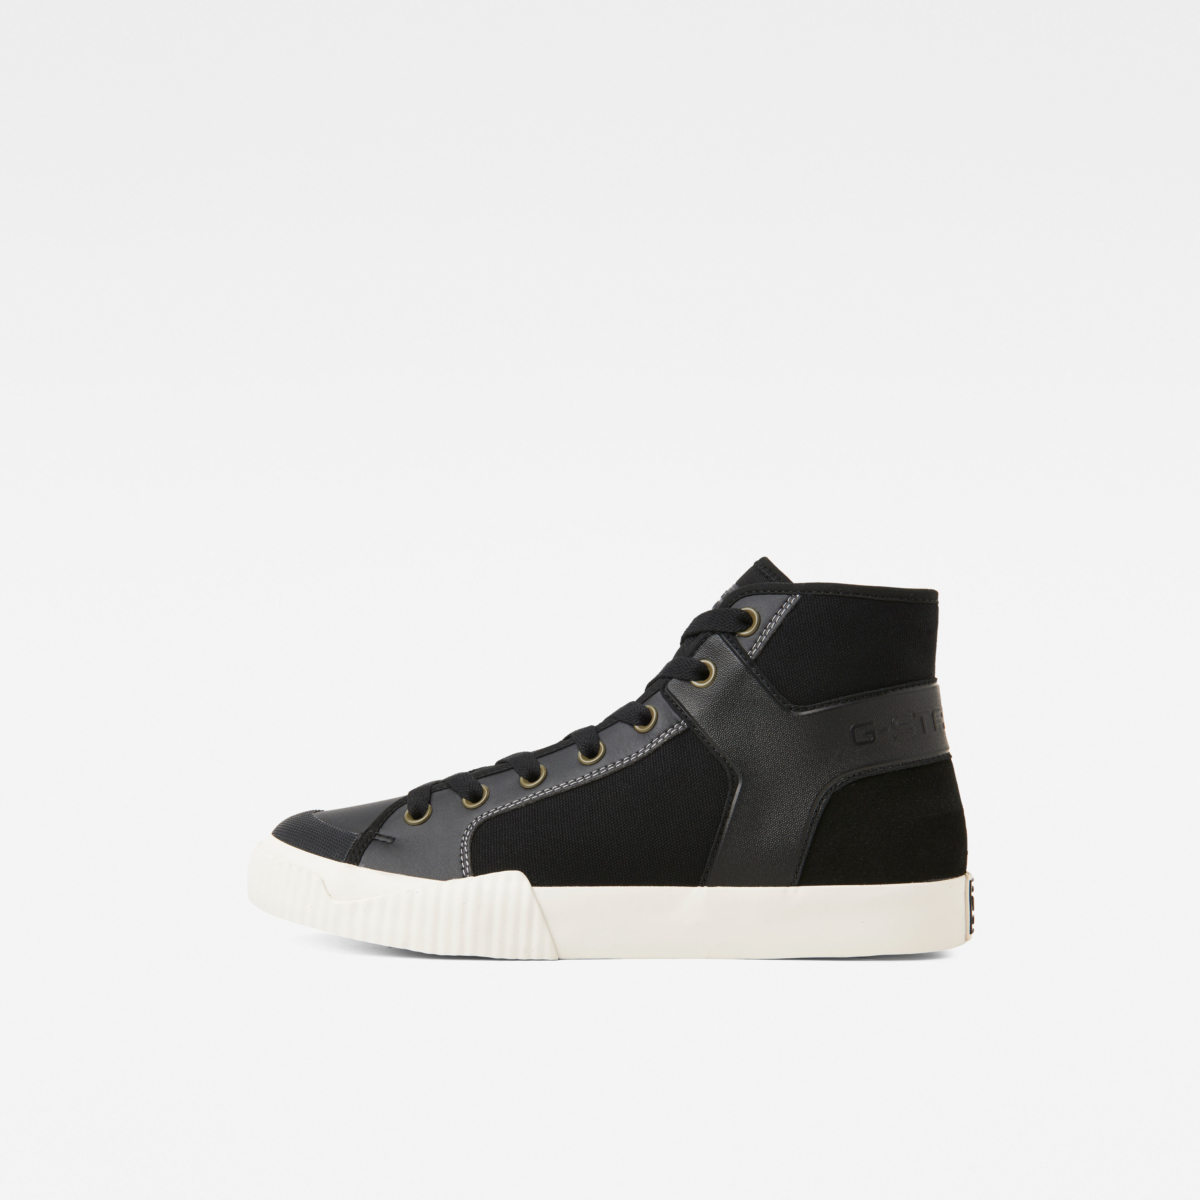 G-Star Shoes Rackam Tendric Mid Boots Black Male Canada - GOOFASH - Mens BOOTS